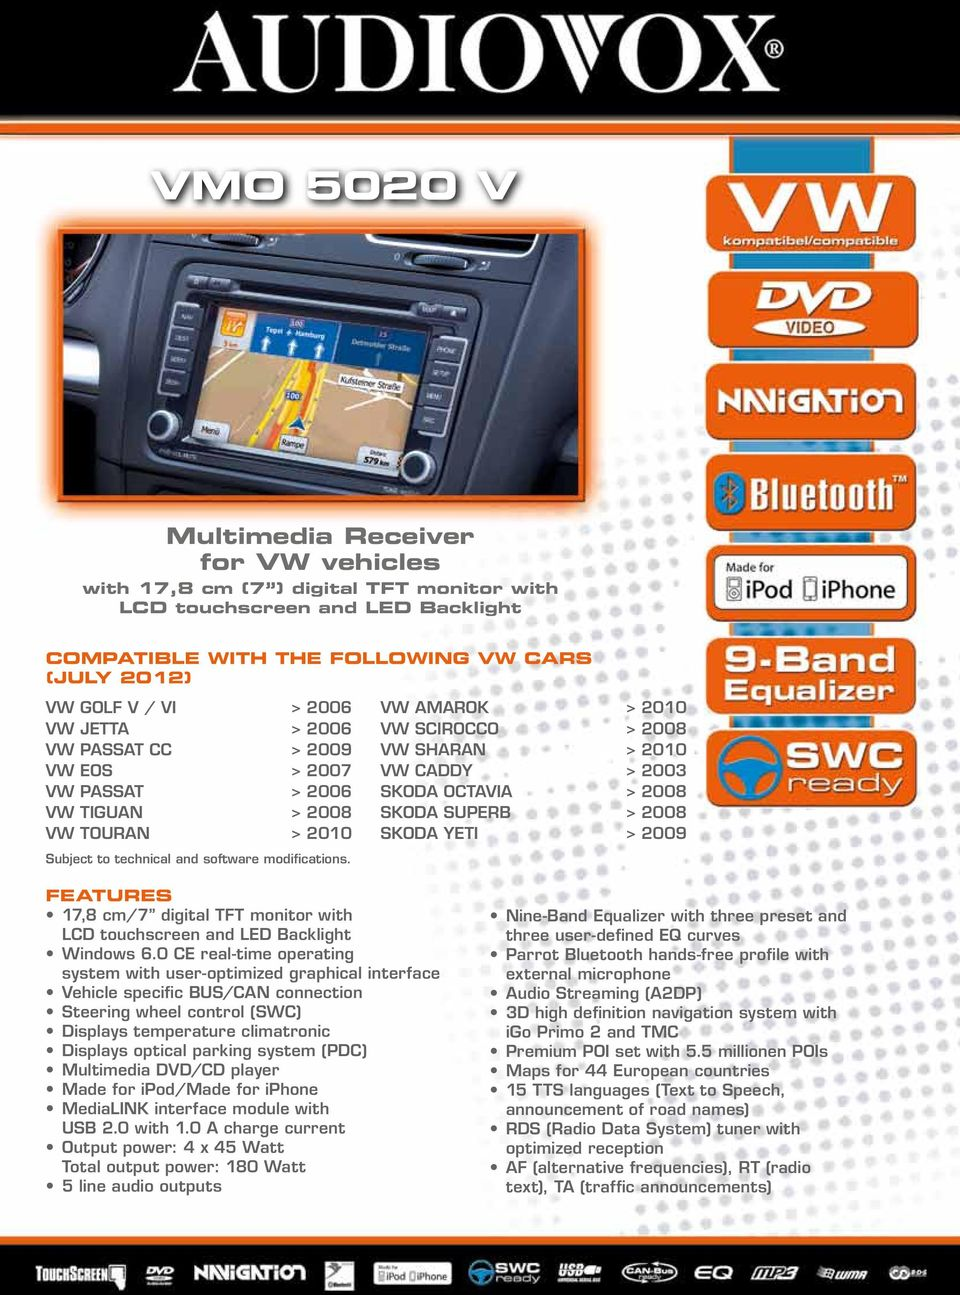 VW AMAROK > 2010 VW SCIROCCO > 2008 VW SHARAN > 2010 VW CADDY > 2003 SKODA OCTAVIA > 2008 SKODA SUPERB > 2008 SKODA YETI > 2009 FEATURES 17,8 cm/7 digital TFT monitor with LCD touchscreen and LED